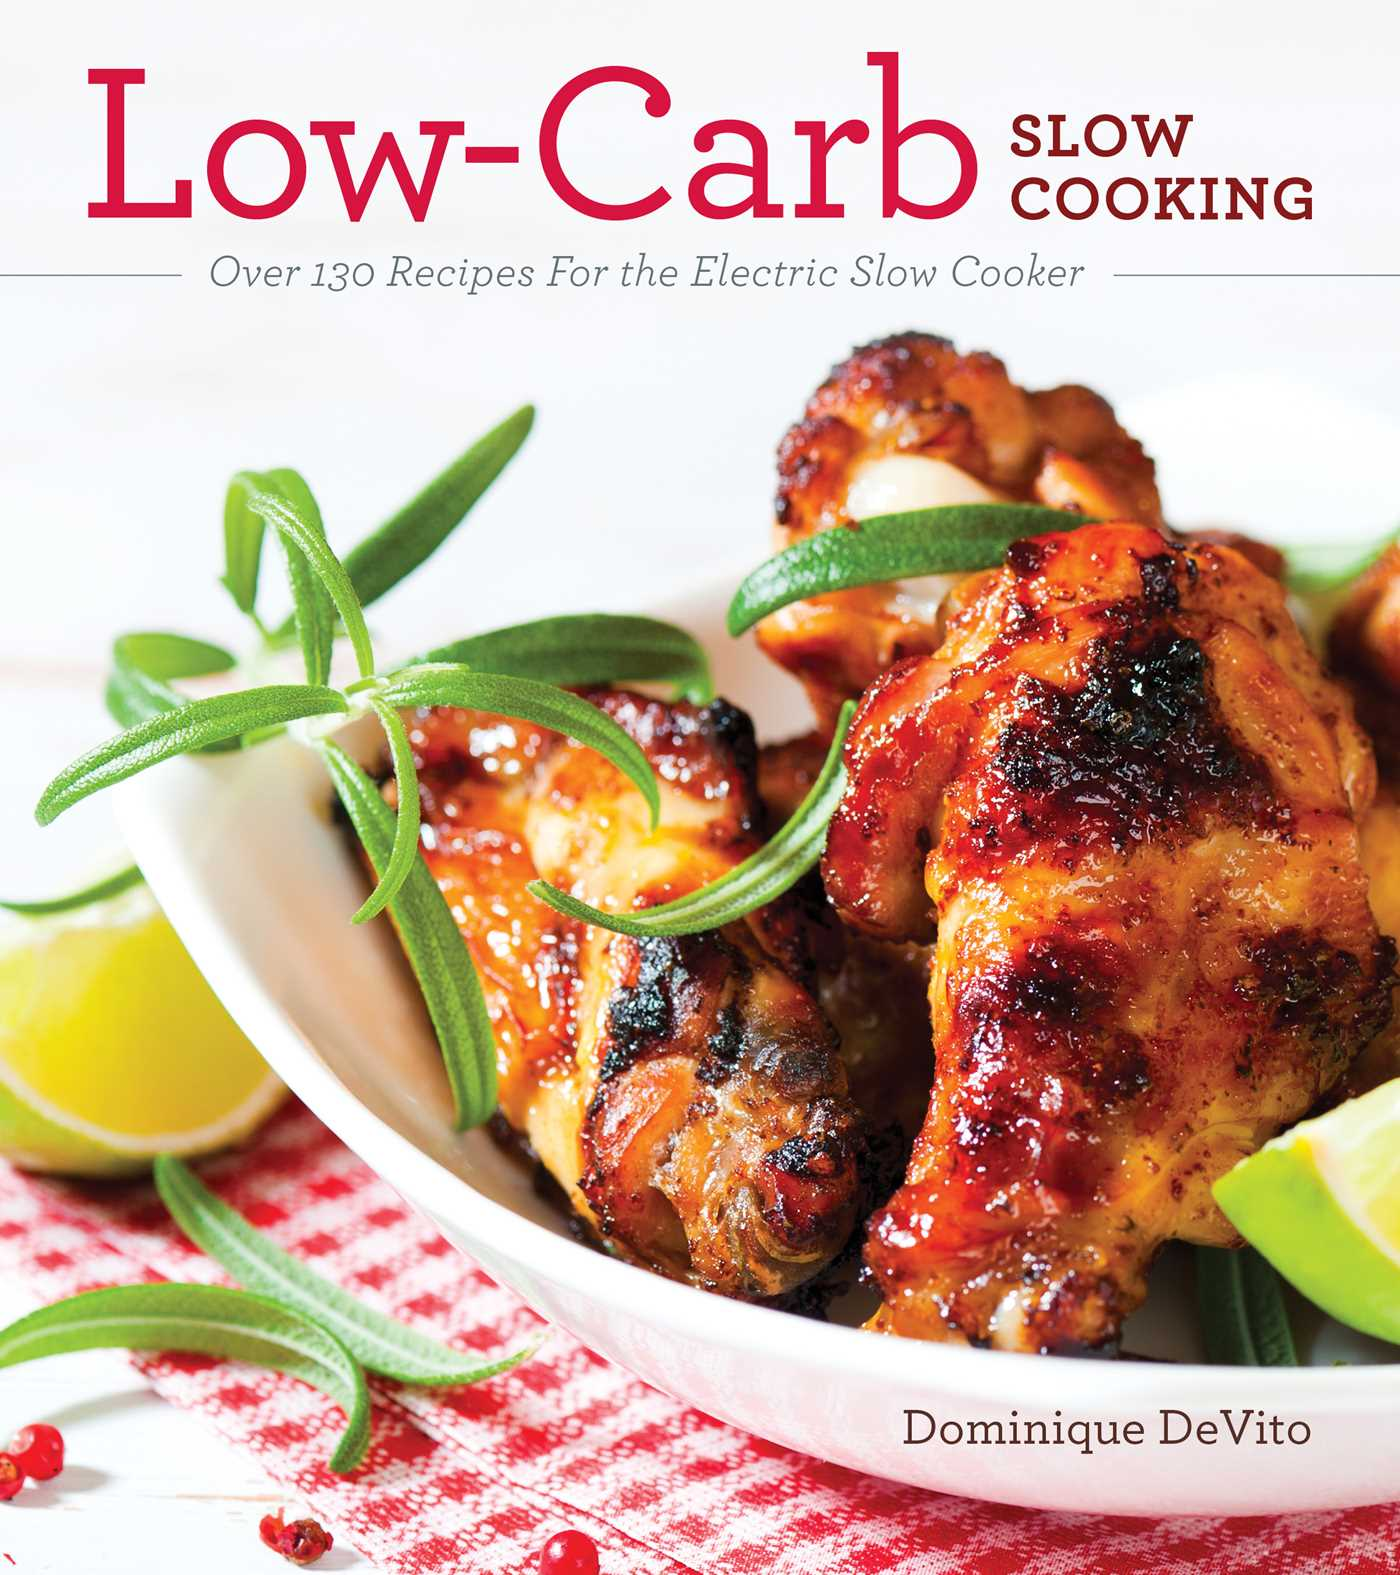 Low carb slow cooking 9781604335064 hr